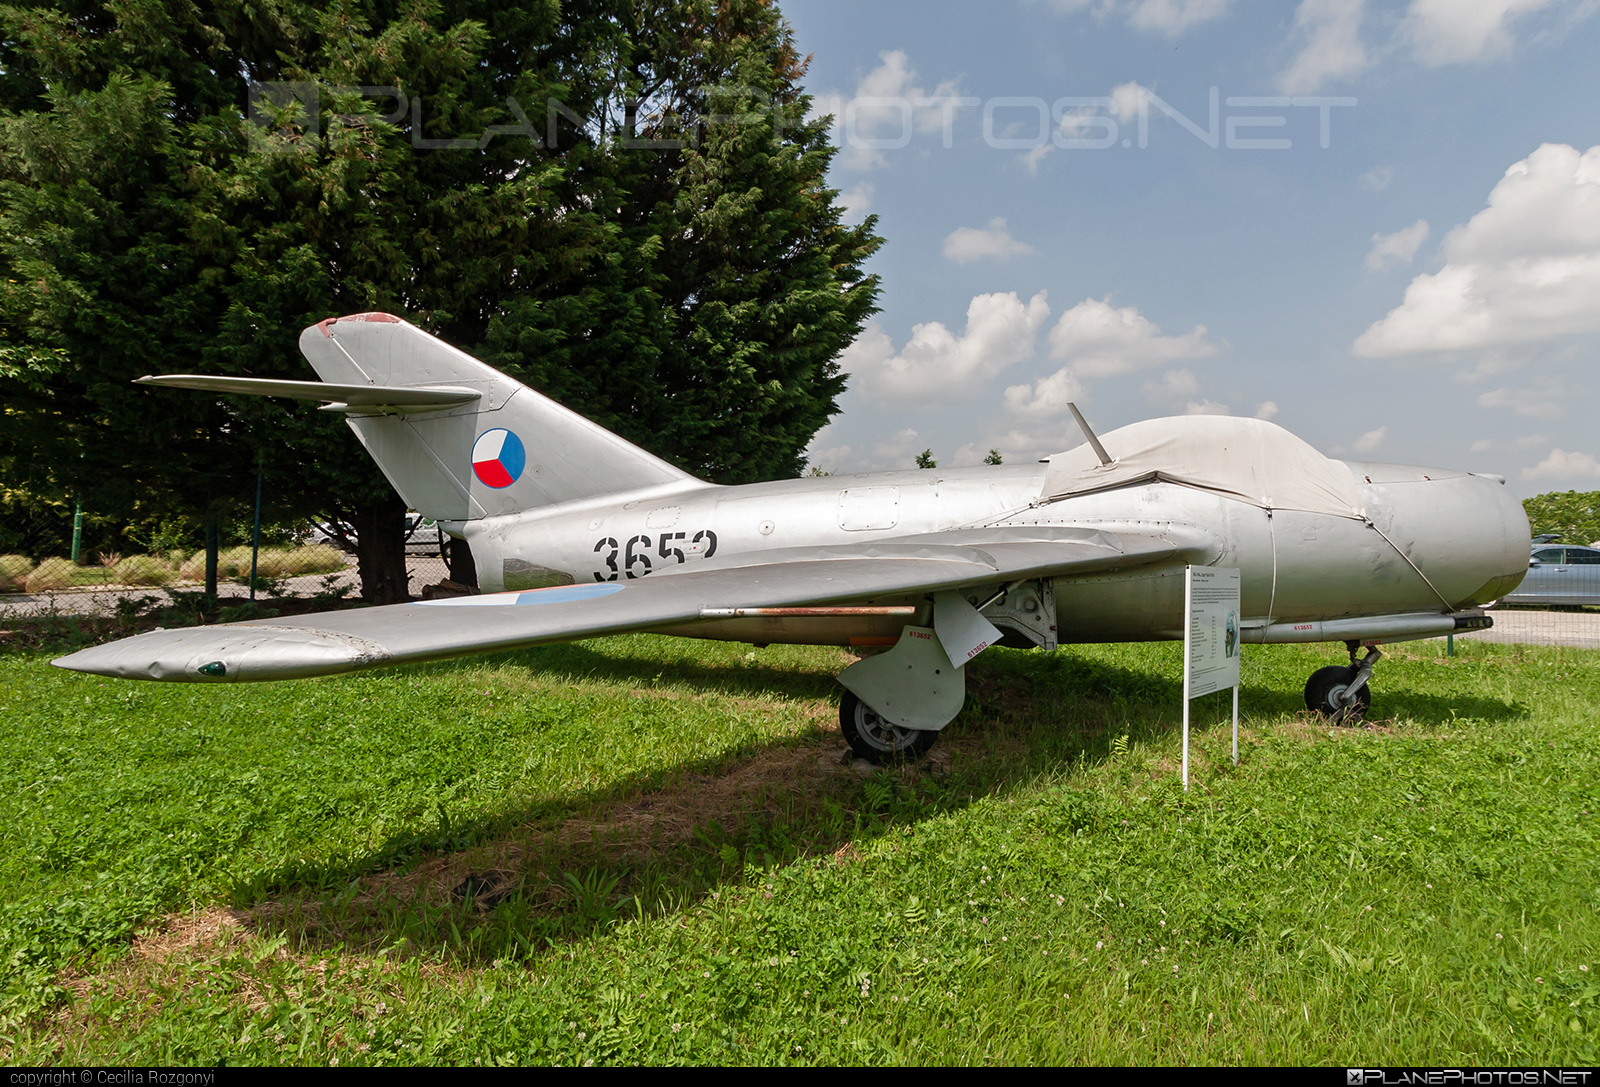 Aero S-103 - 3652 operated by Letectvo ČSĽA (Czechoslovak Air Force) #aero #aeros103 #mig15 #mig15bis